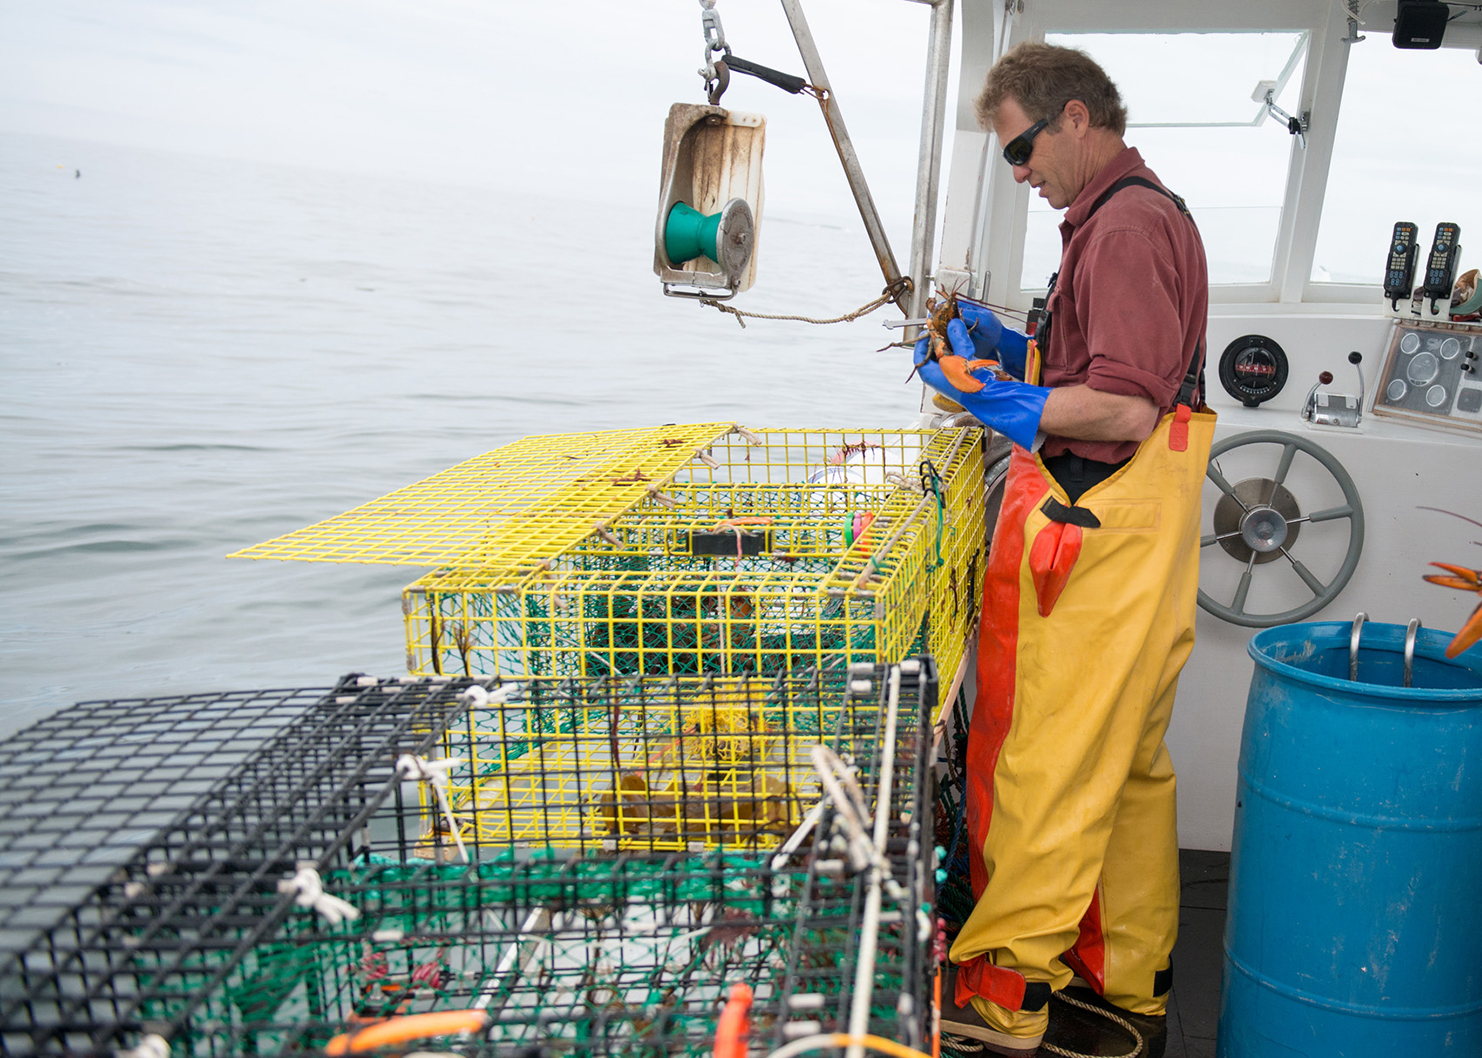 Sustainability for Lobster fishing in maine